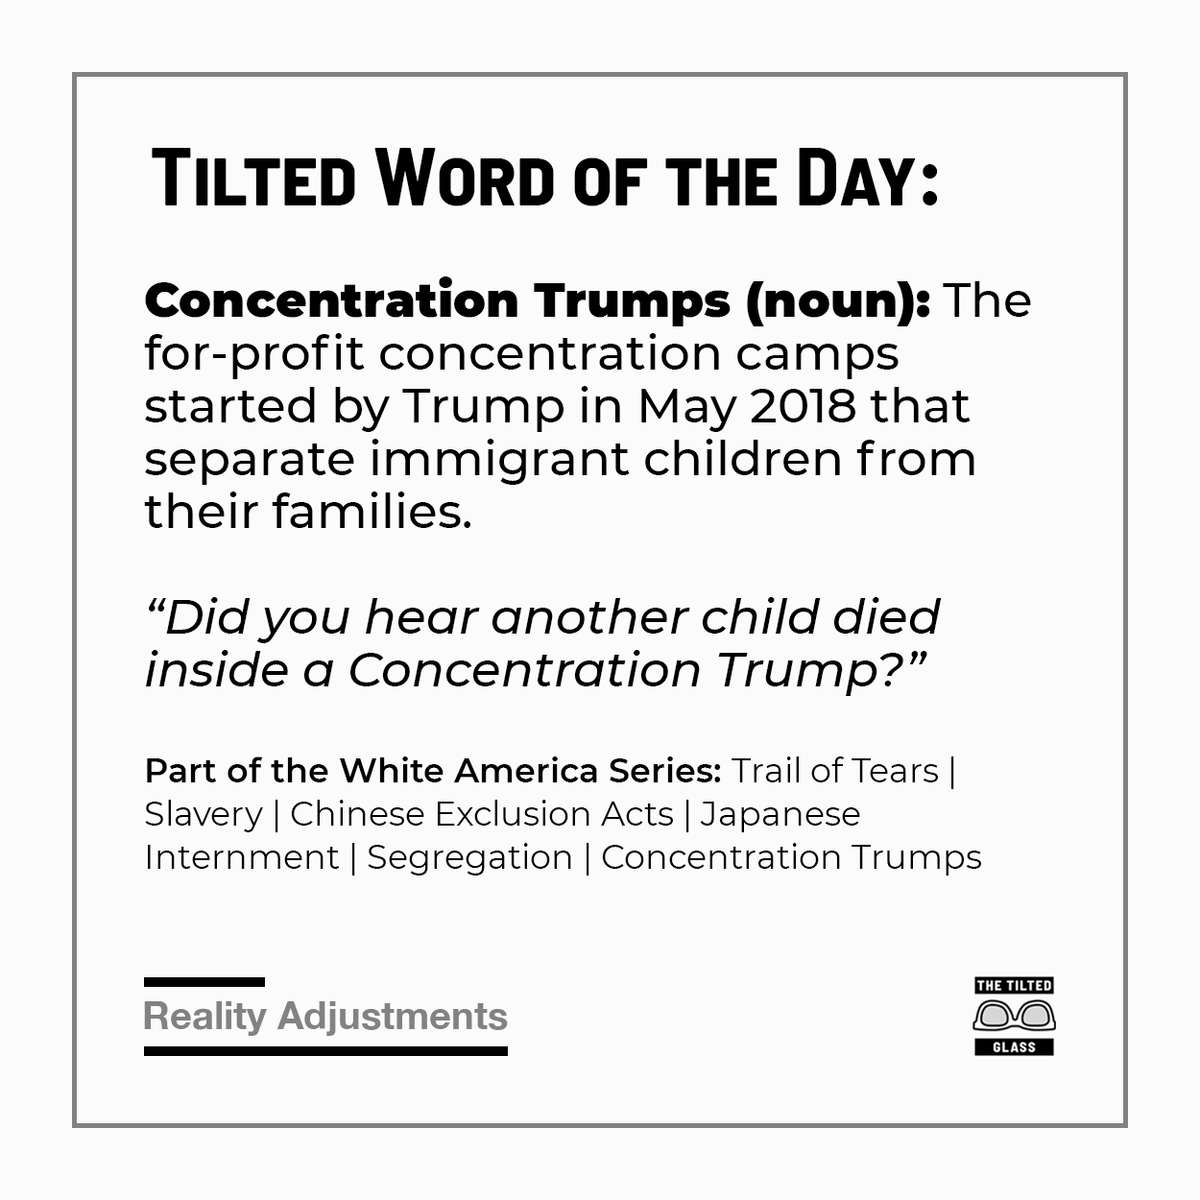 Tilted Word of the Day: Concentration Trumps (noun)